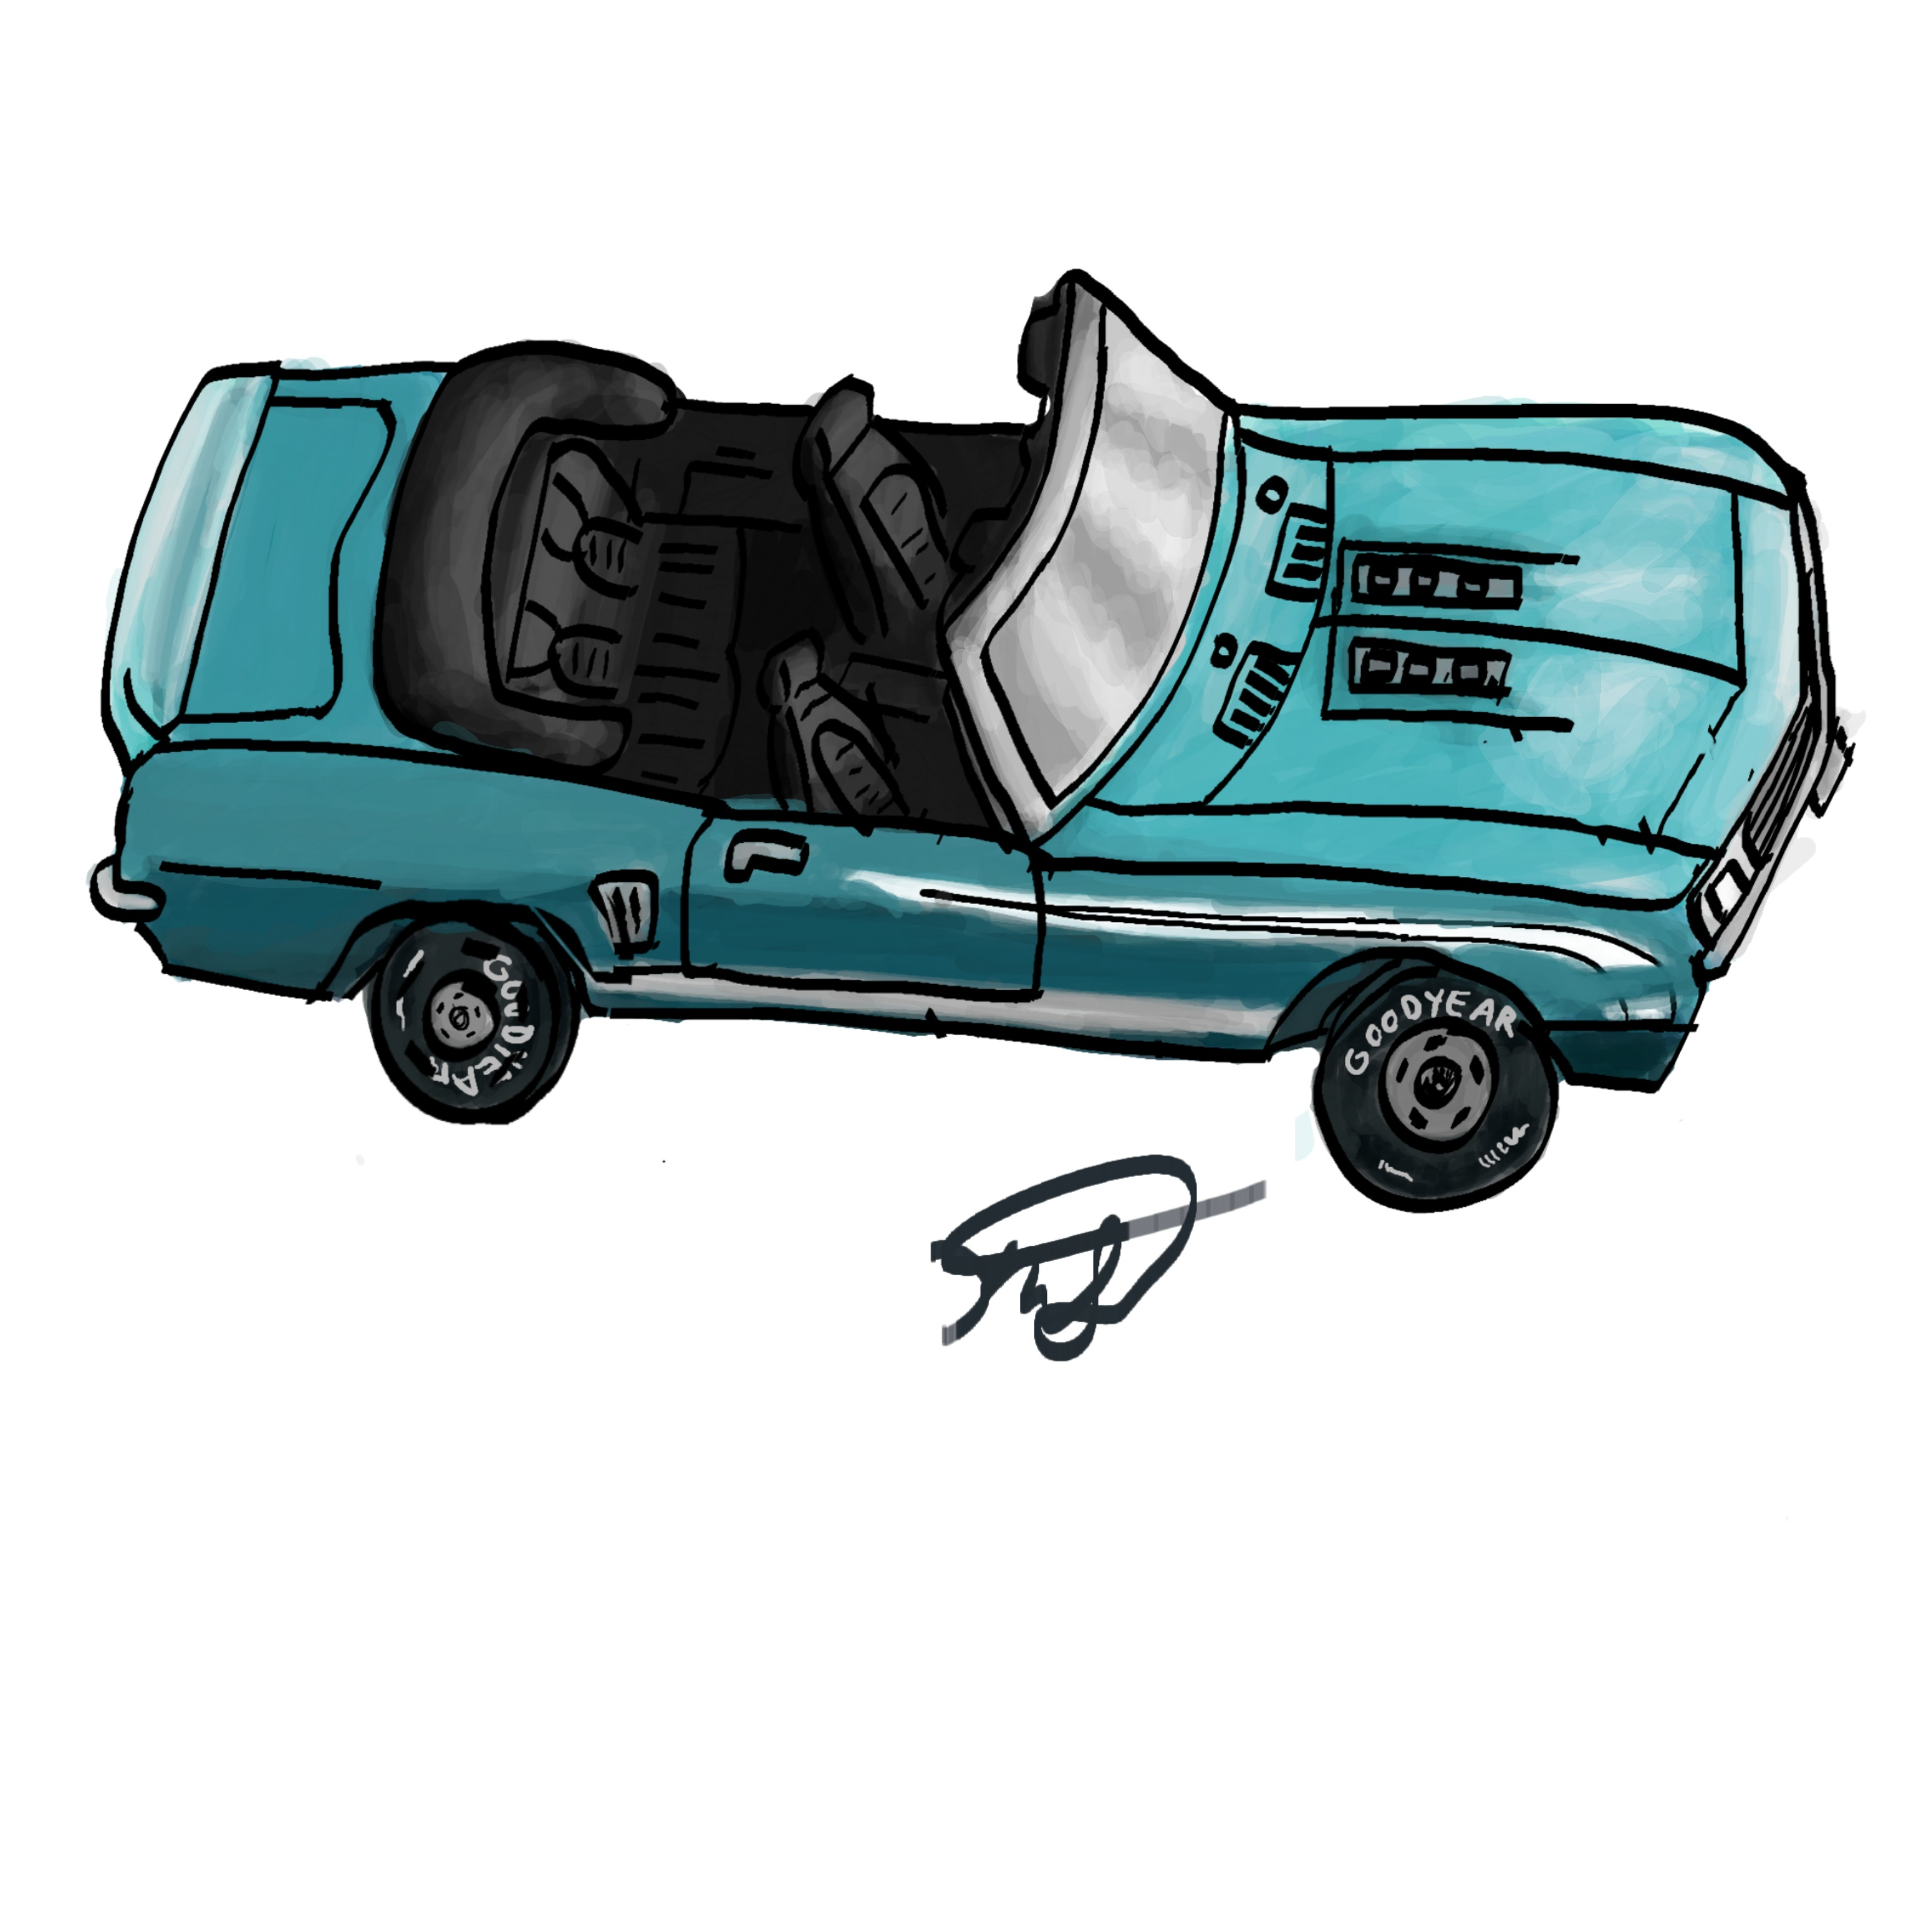 Car, My 1st Realistic Drawing